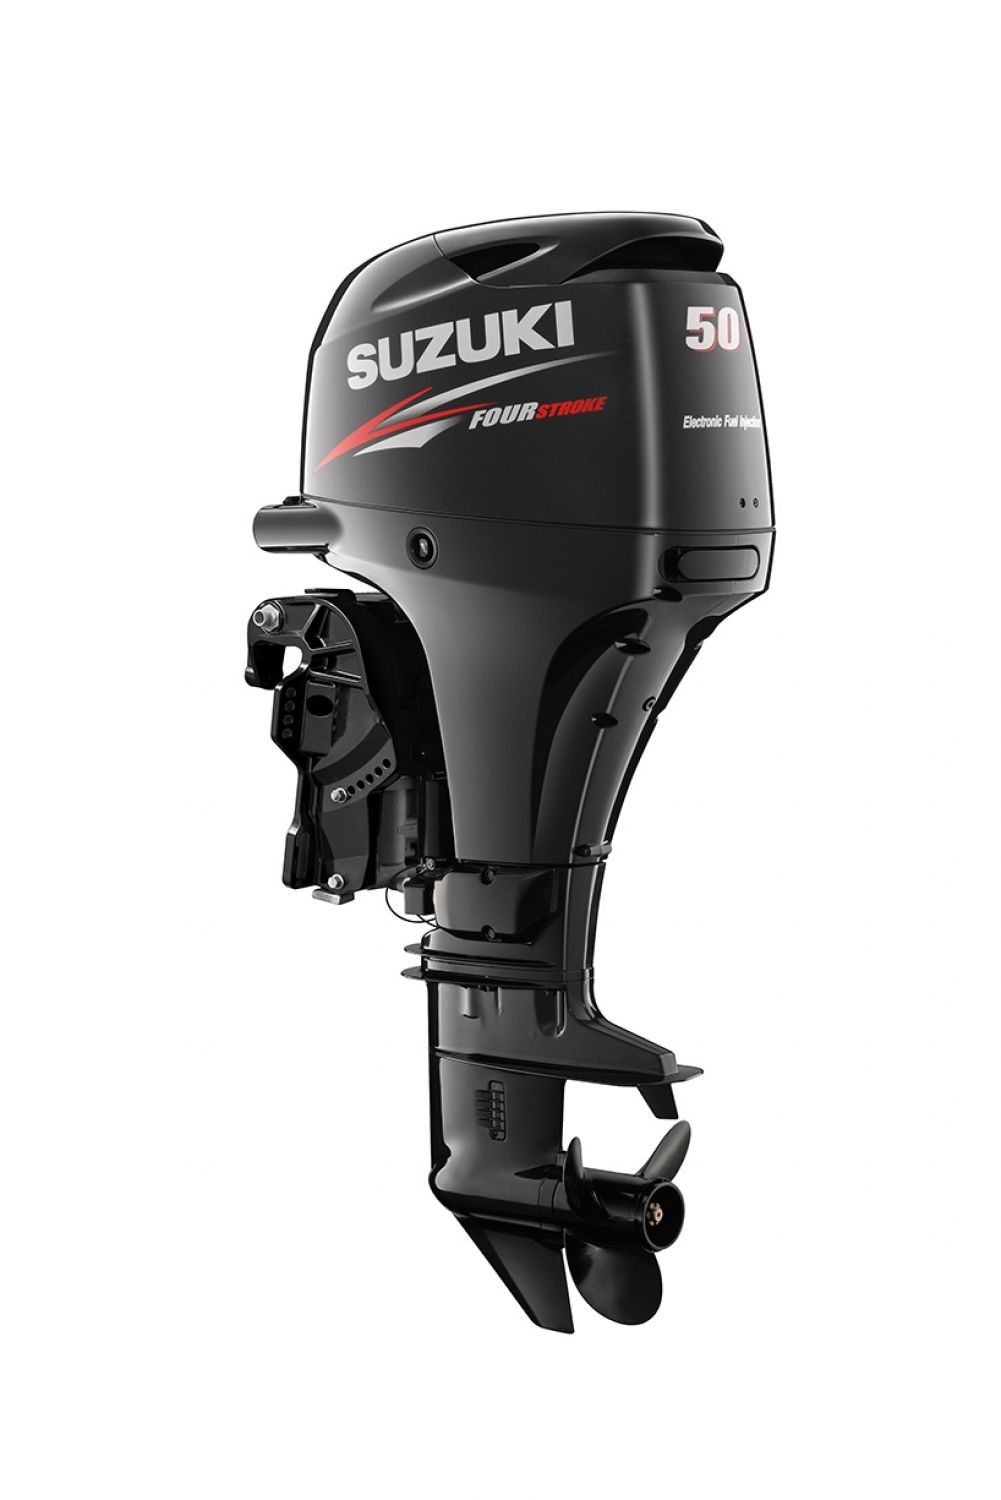 Suzuki DF50A Four Stroke Marine Outboard Engine